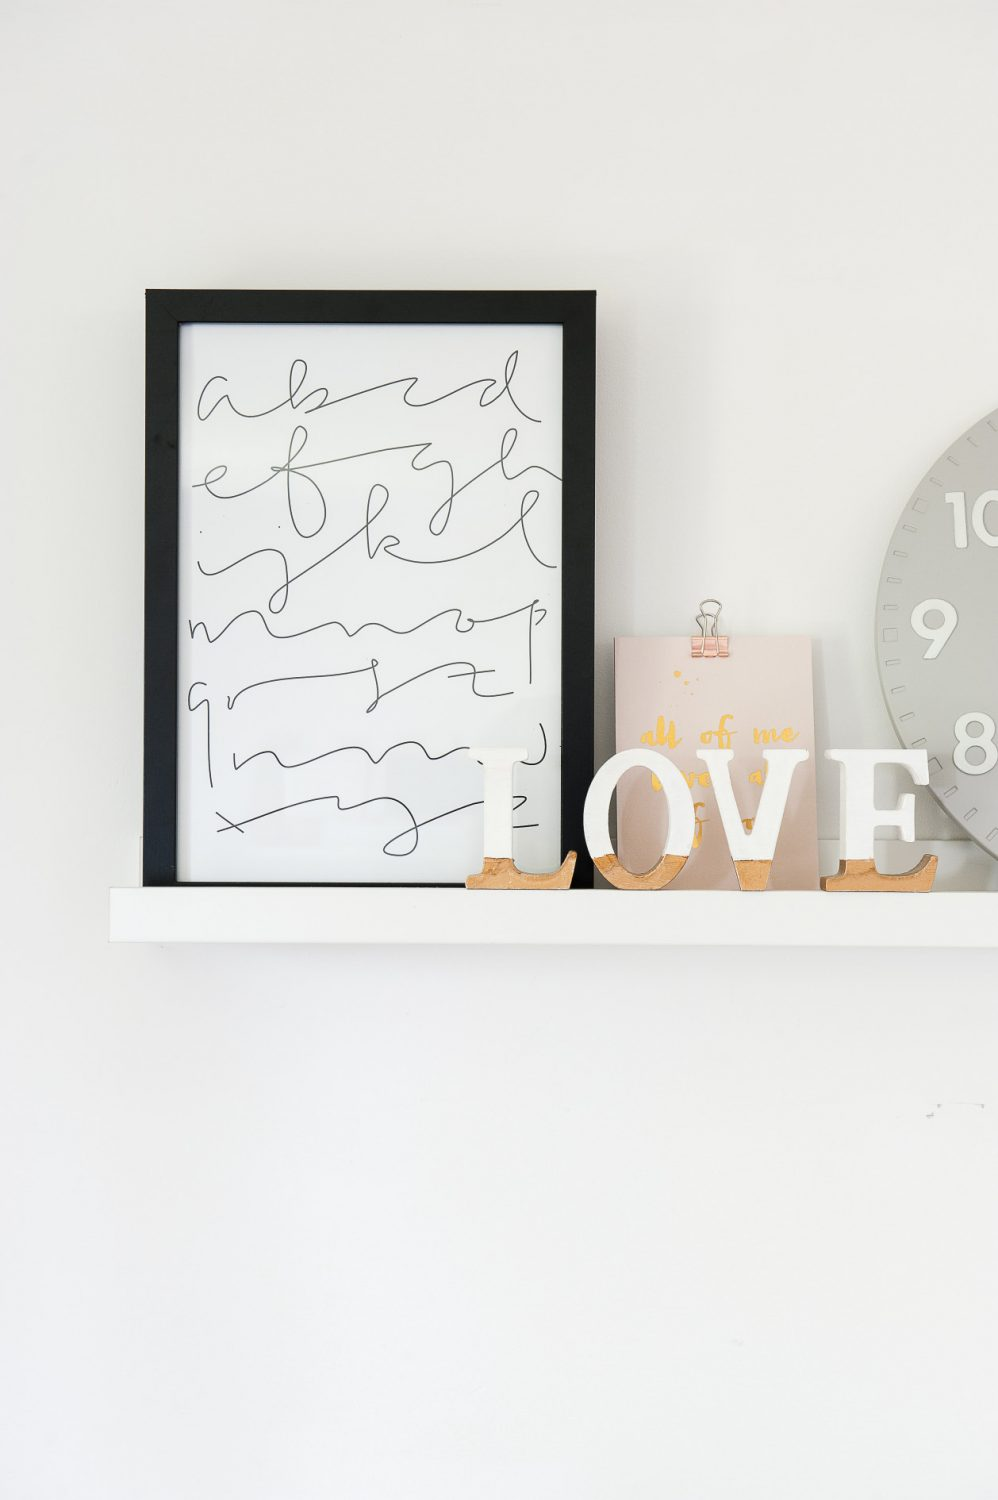 Groupings of prints and objects line shelves along the walls and above the bed